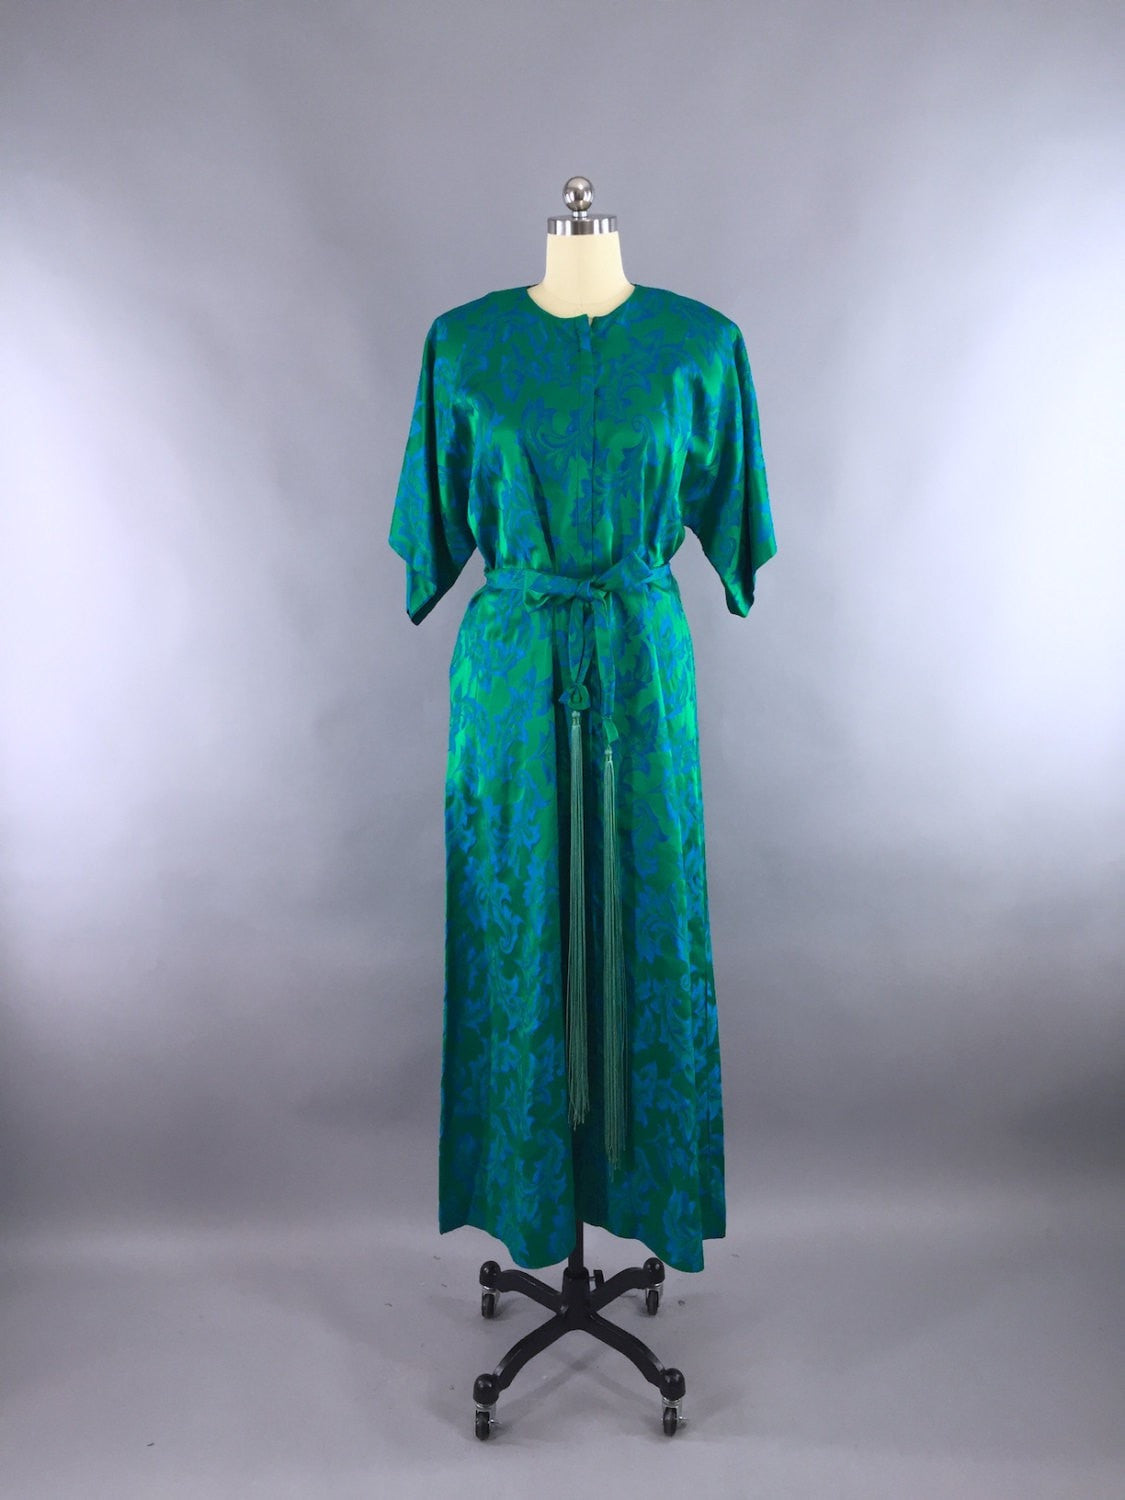 Vintage 1960s Hostess Dress / Emerald Green with Fringe Sash / Saks Fifth Ave Dress ThisBlueBird